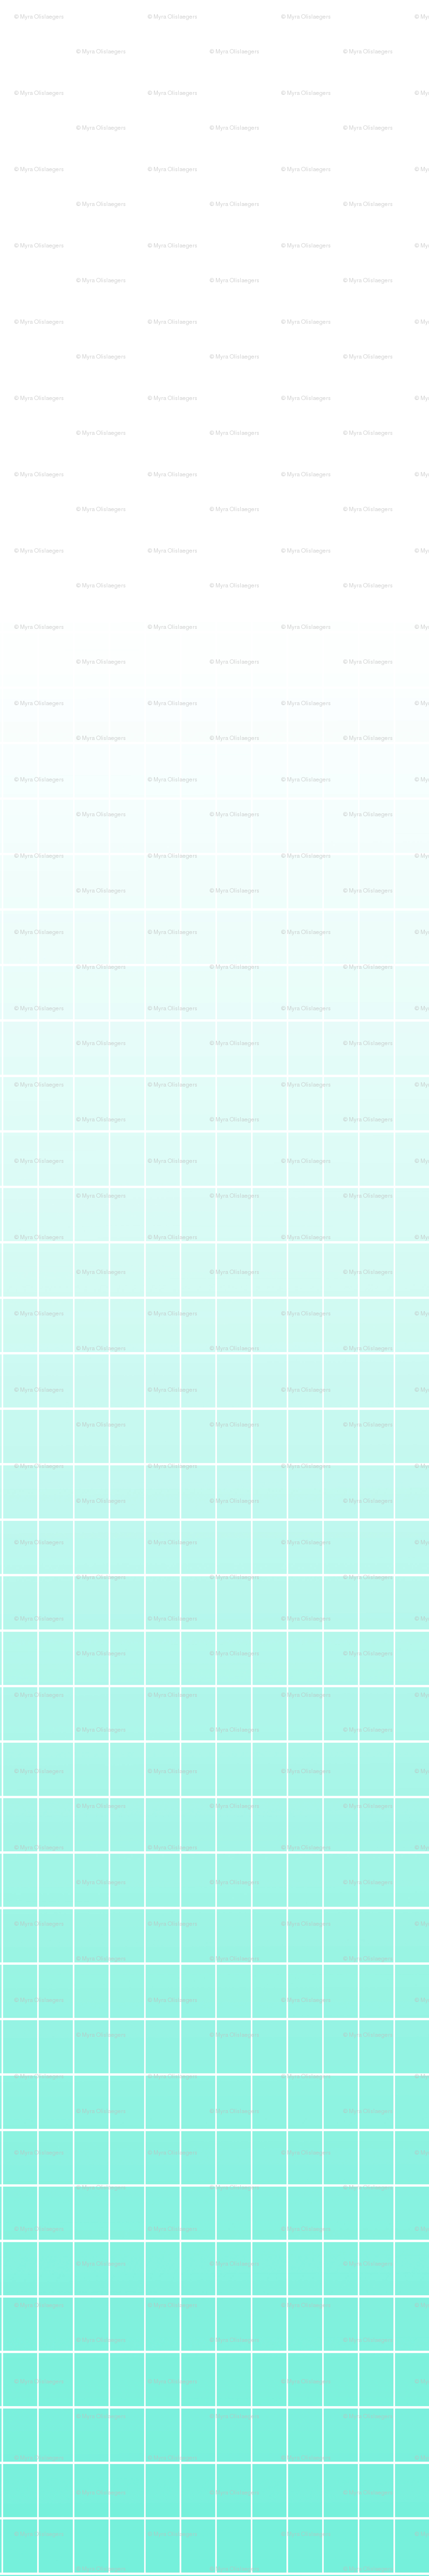 Ombre wallpaper cheap gradient image by patrisha on